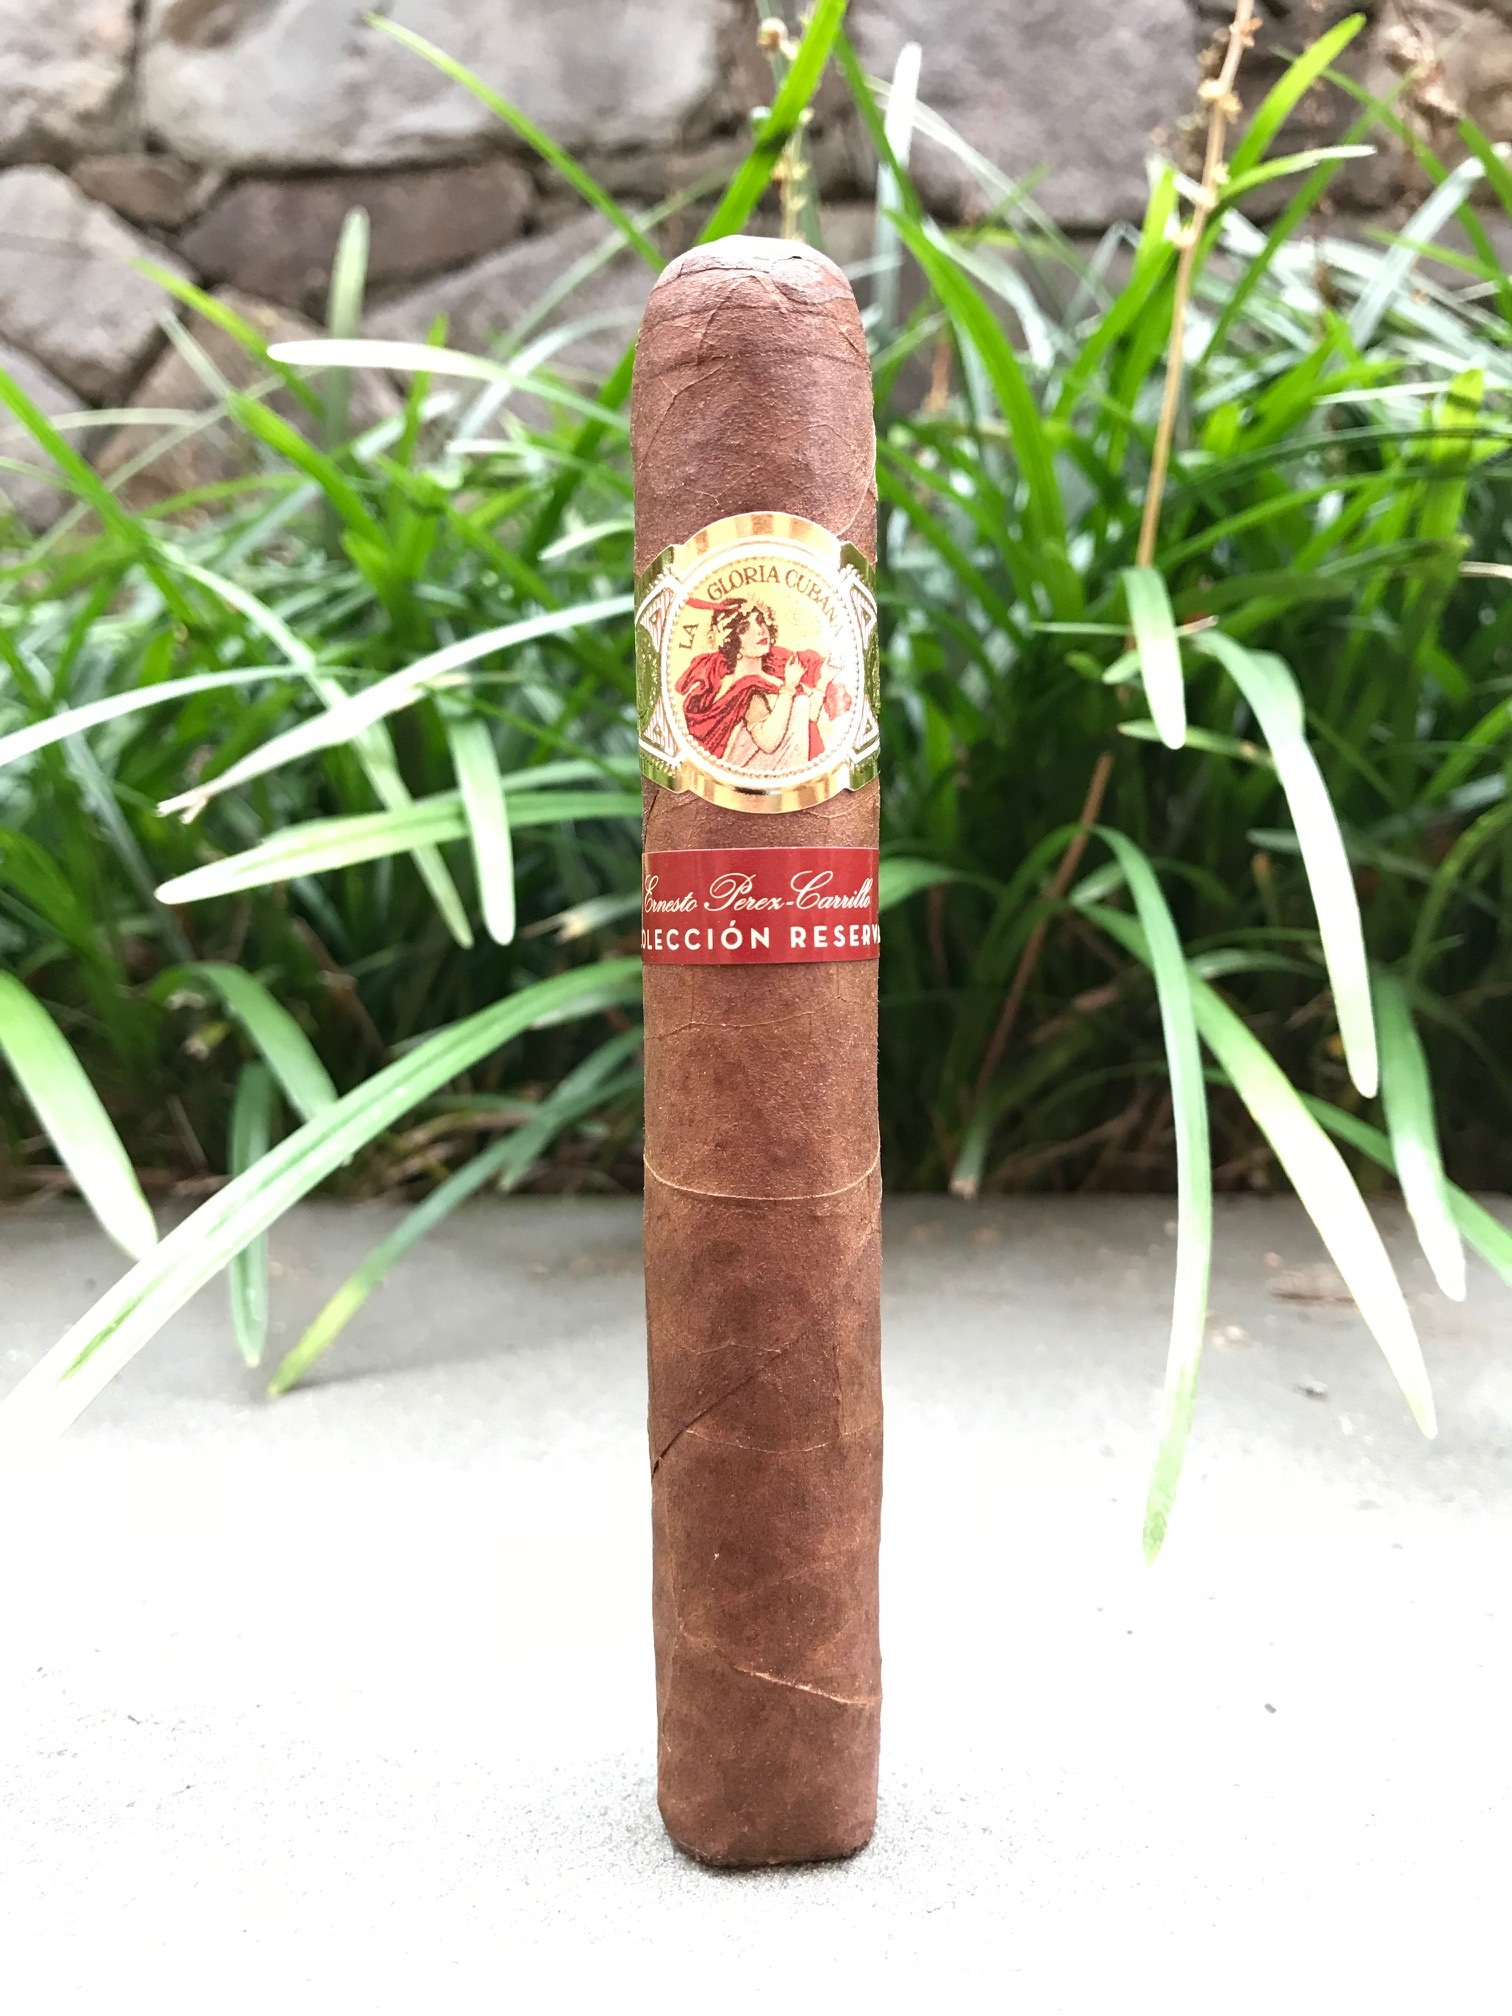 La Gloria Cubana Coleccion Reserva Robusto - Box of 20 image